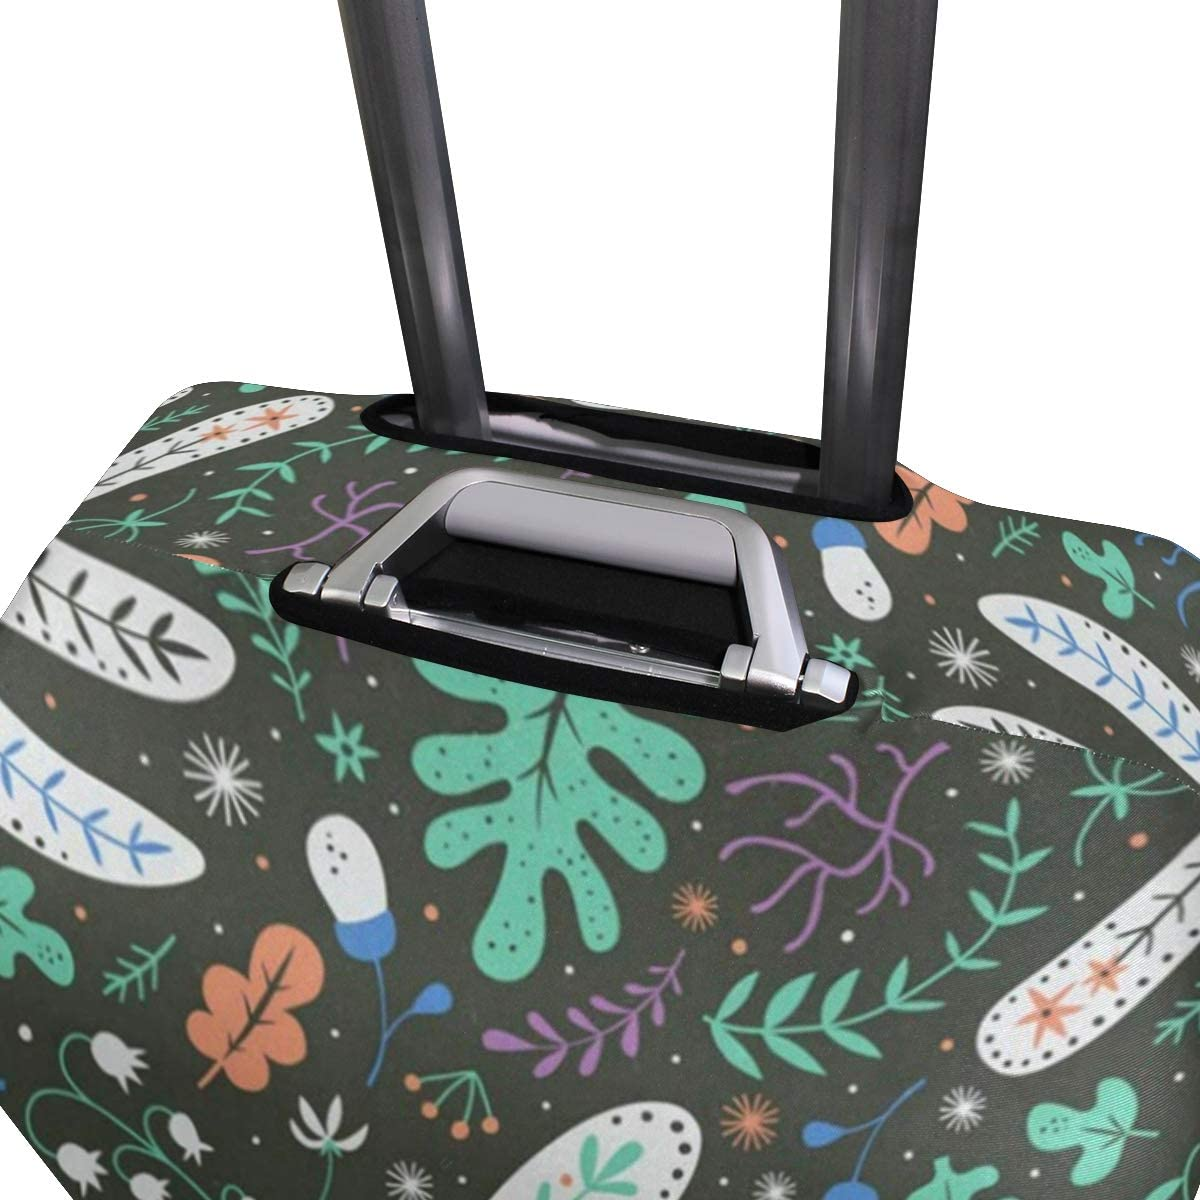 Suitcase Cover Floral Paris Eiffel Tower Luggage Cover Travel Case Bag Protector for Kid Girls